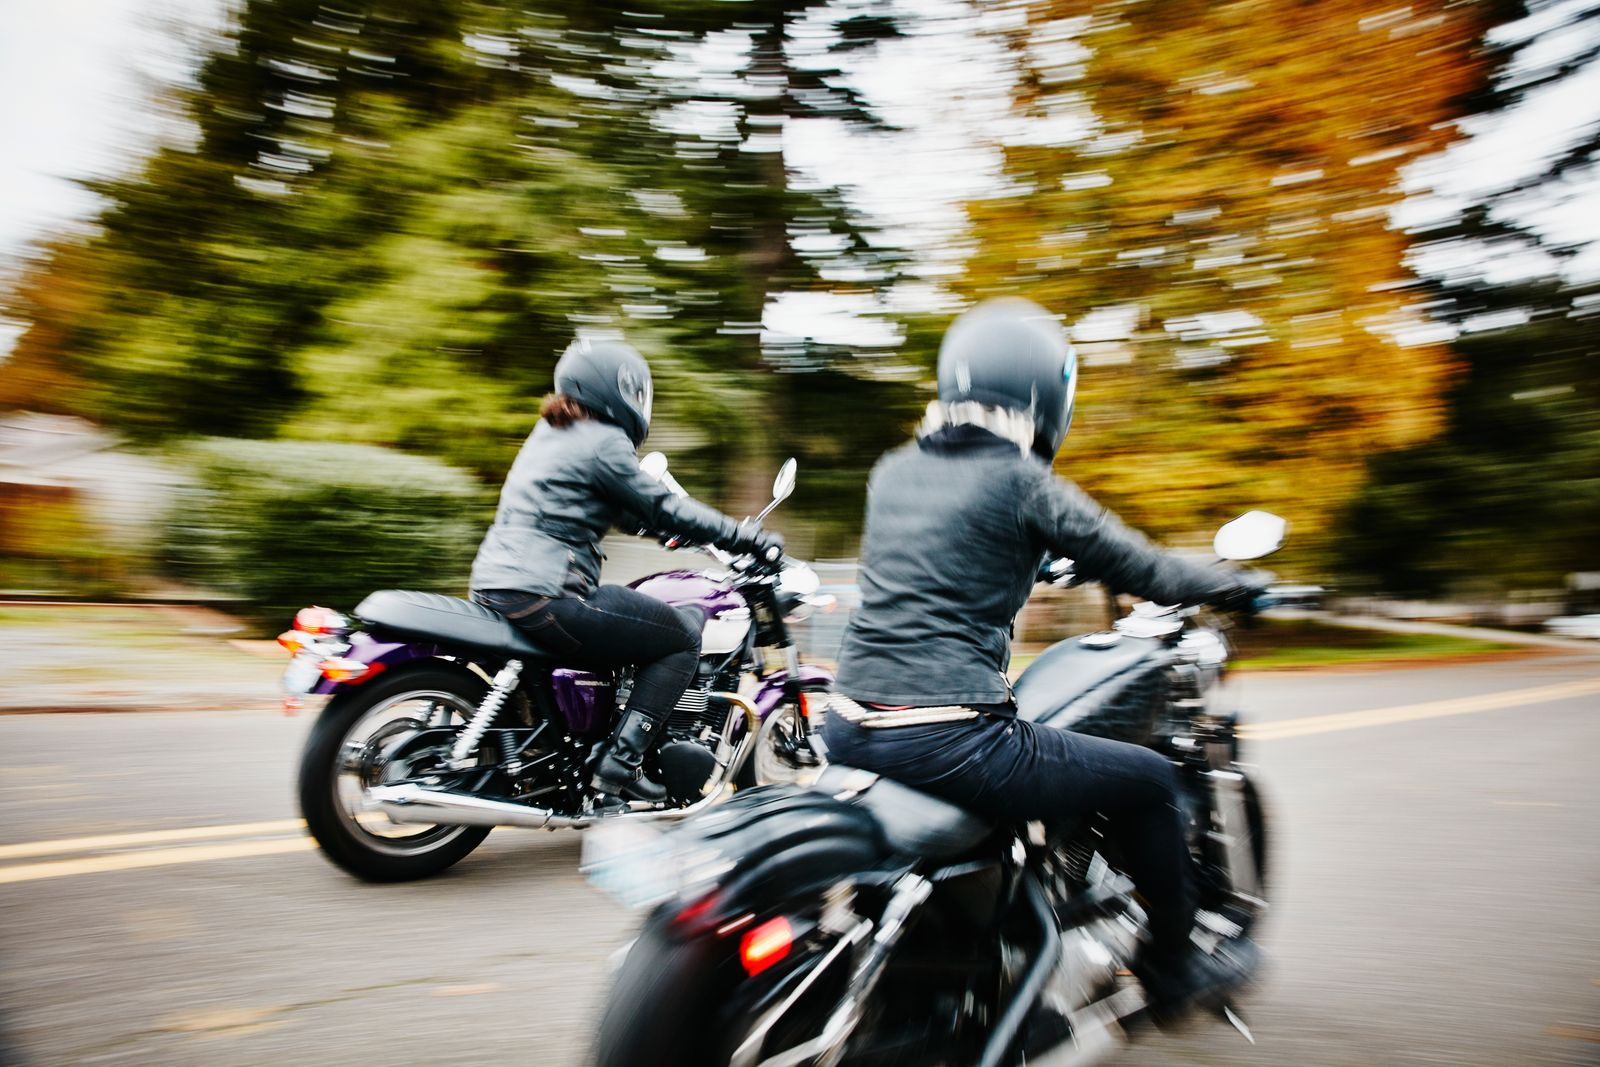 Two women riding motorcycles together down road